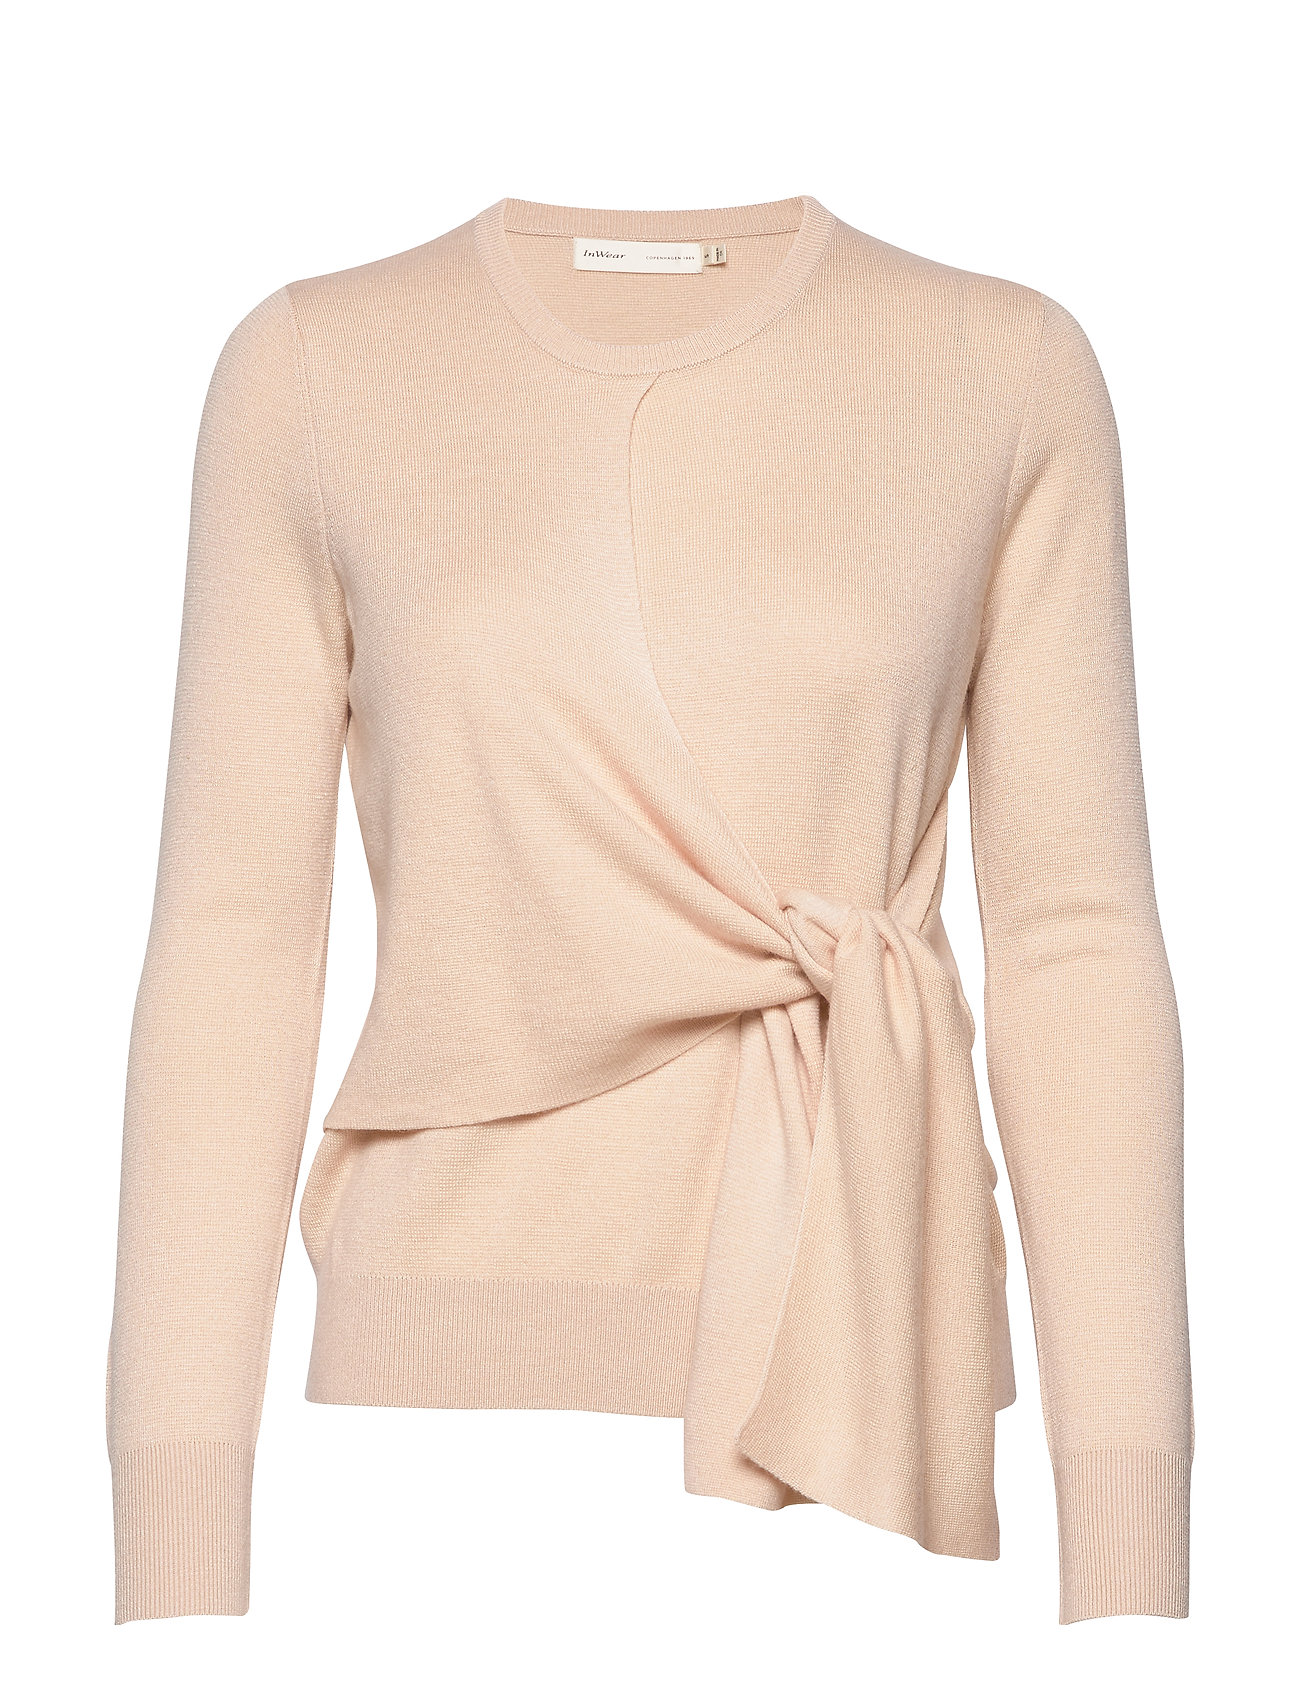 InWear EmaleeIW Tie Pullover - FRENCH NOUGAT